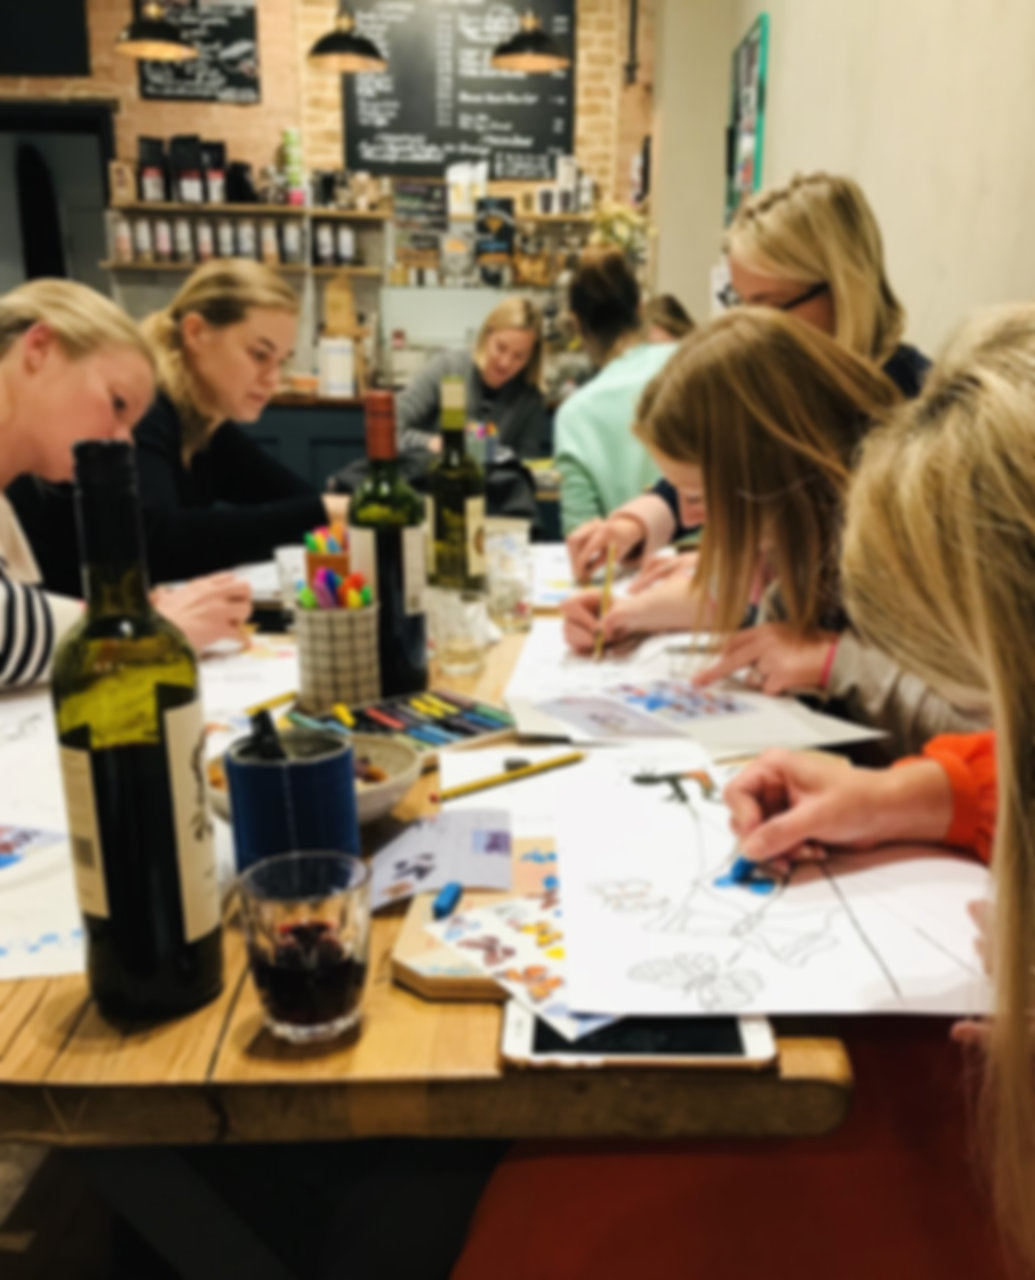 Women sitting at a table with glasses of wine, sketching and colouring